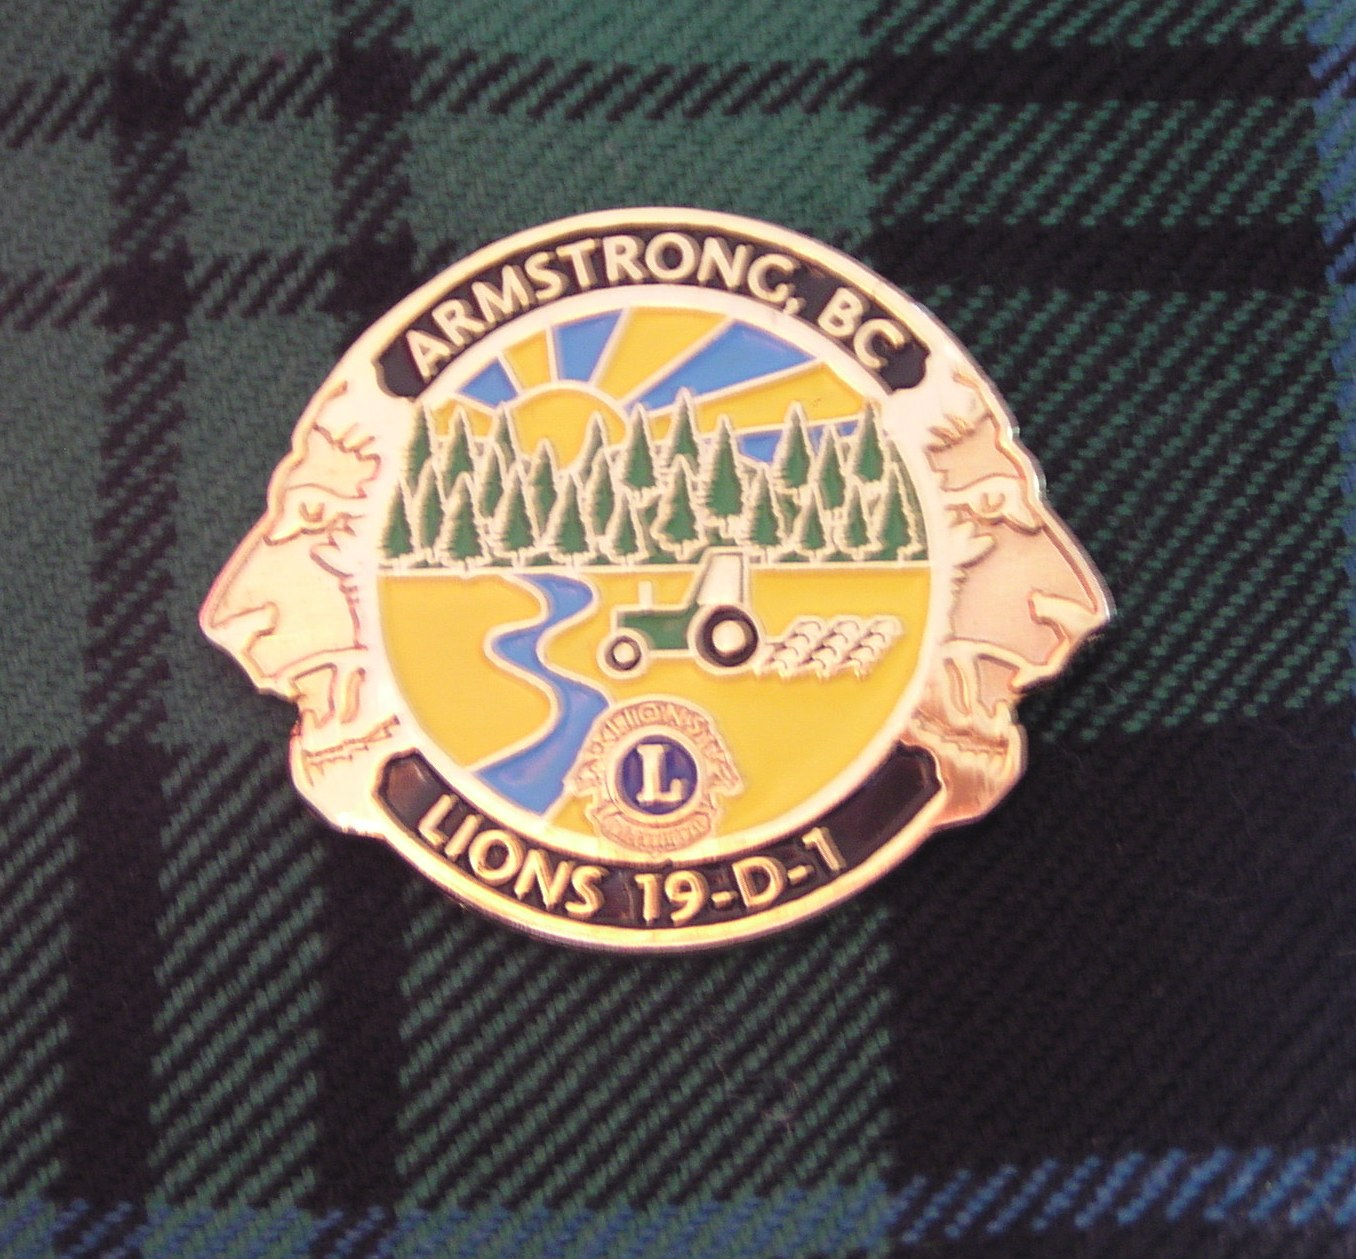 Armstrong Lions Club